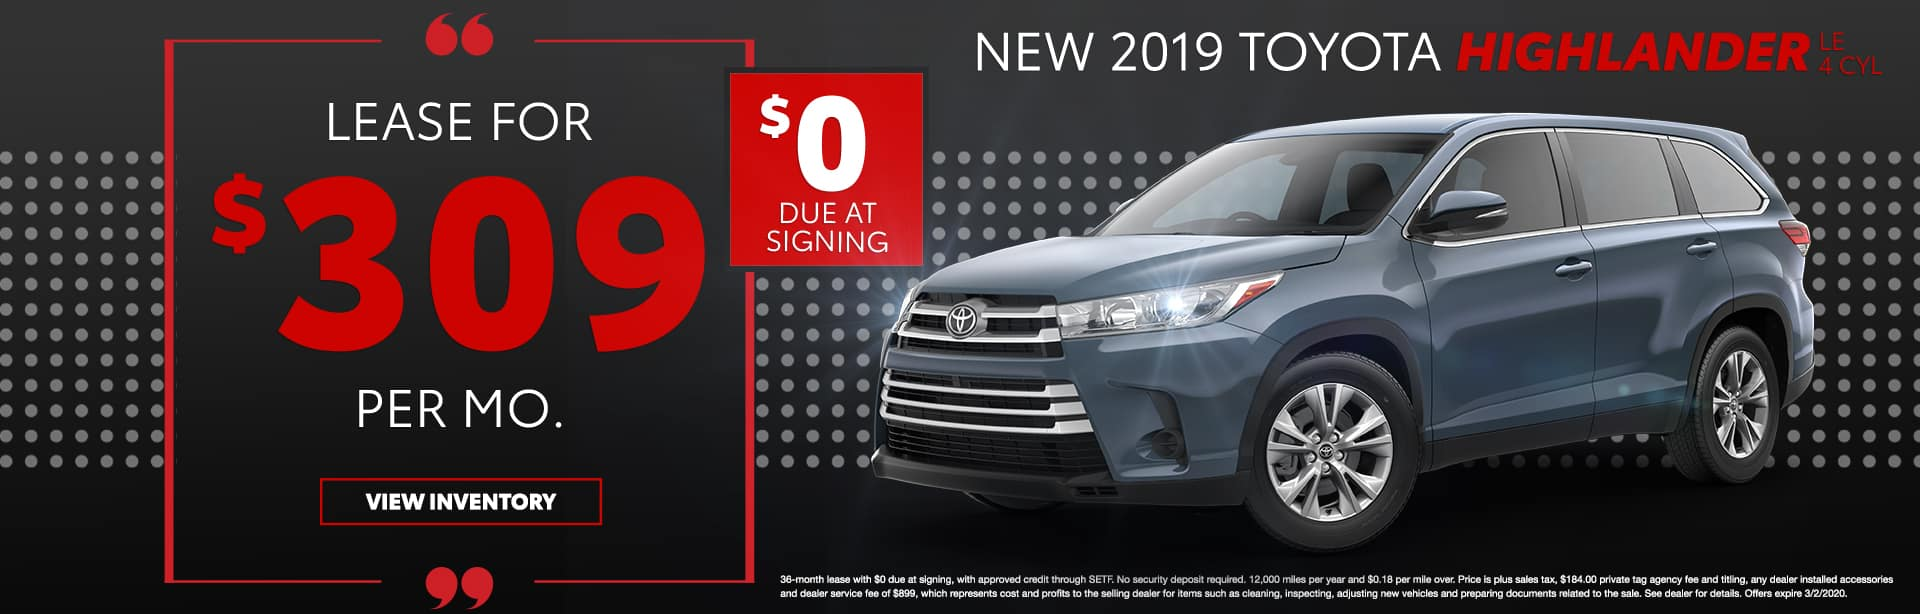 New 2019 Toyota Highlander LE 4 CYL   Lease For $309 Per Mo   $0 Due At Signing